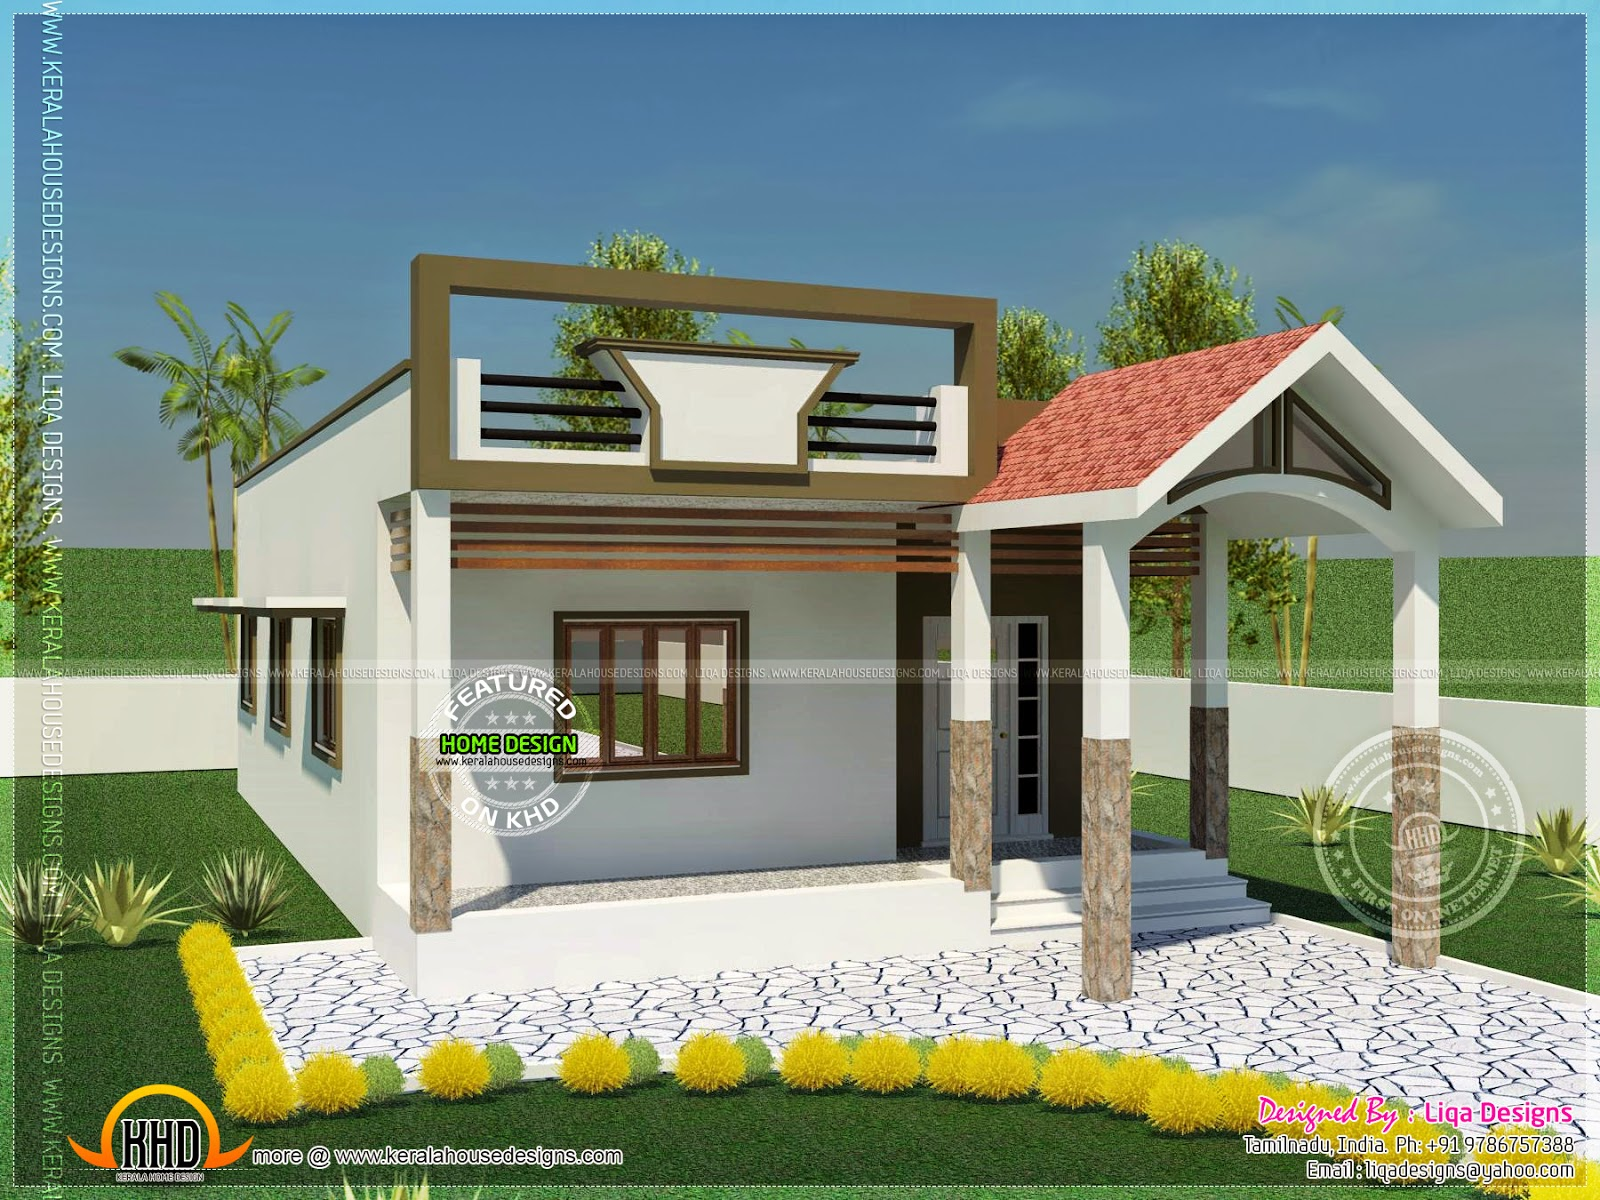 740 square feet single storied house kerala home design for One floor farmhouse plans